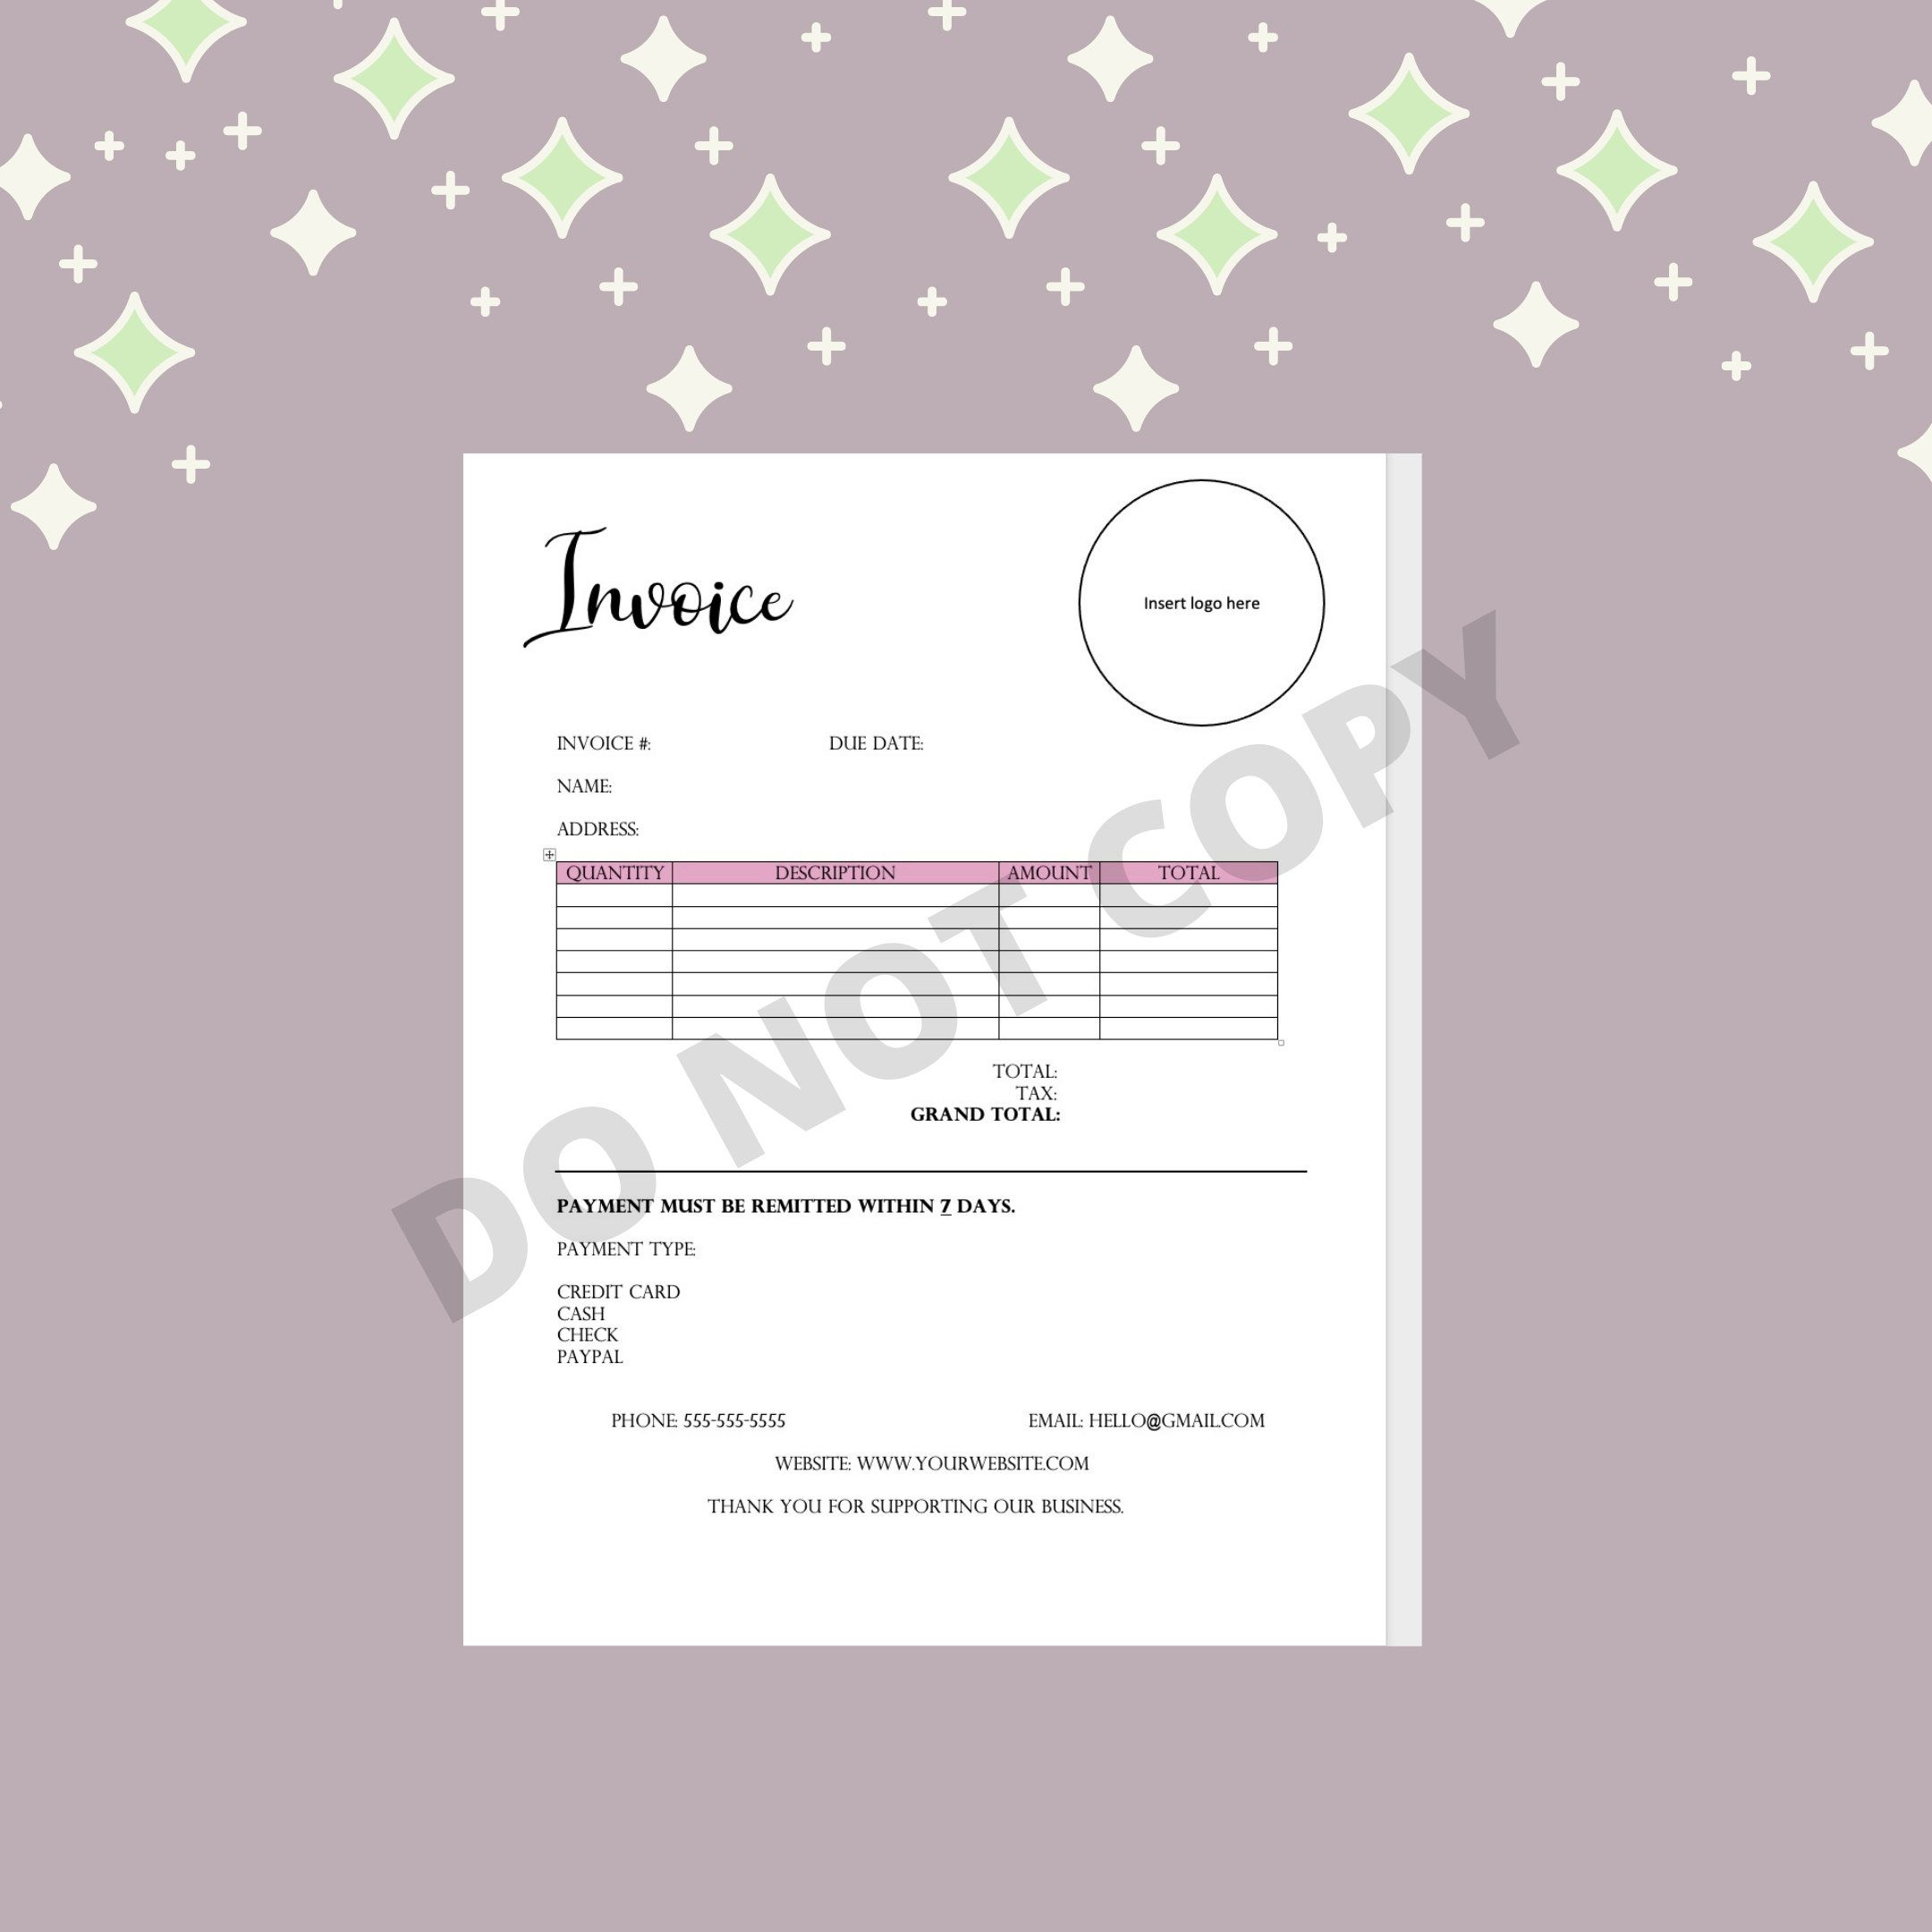 Digital Invoice Small Business Cleaning Contractor Etsy Invoice Template Cash Credit Card Custom Sticker Sheets